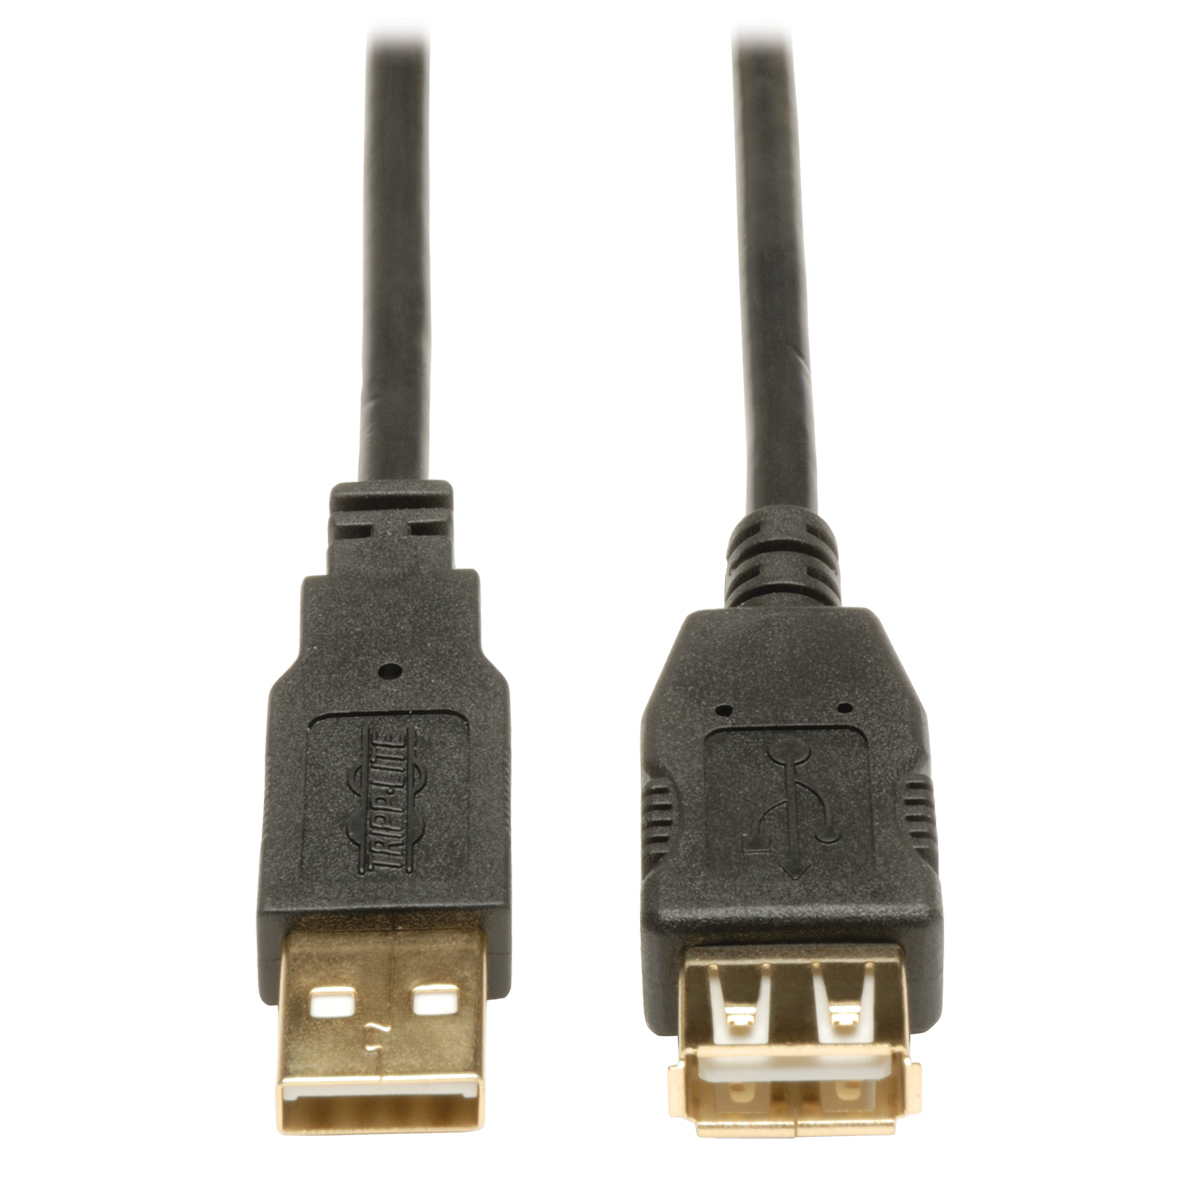 Tripp Lite 6ft USB 2.0 Hi-Speed A//B Device Cable Ferrite Chokes M//M